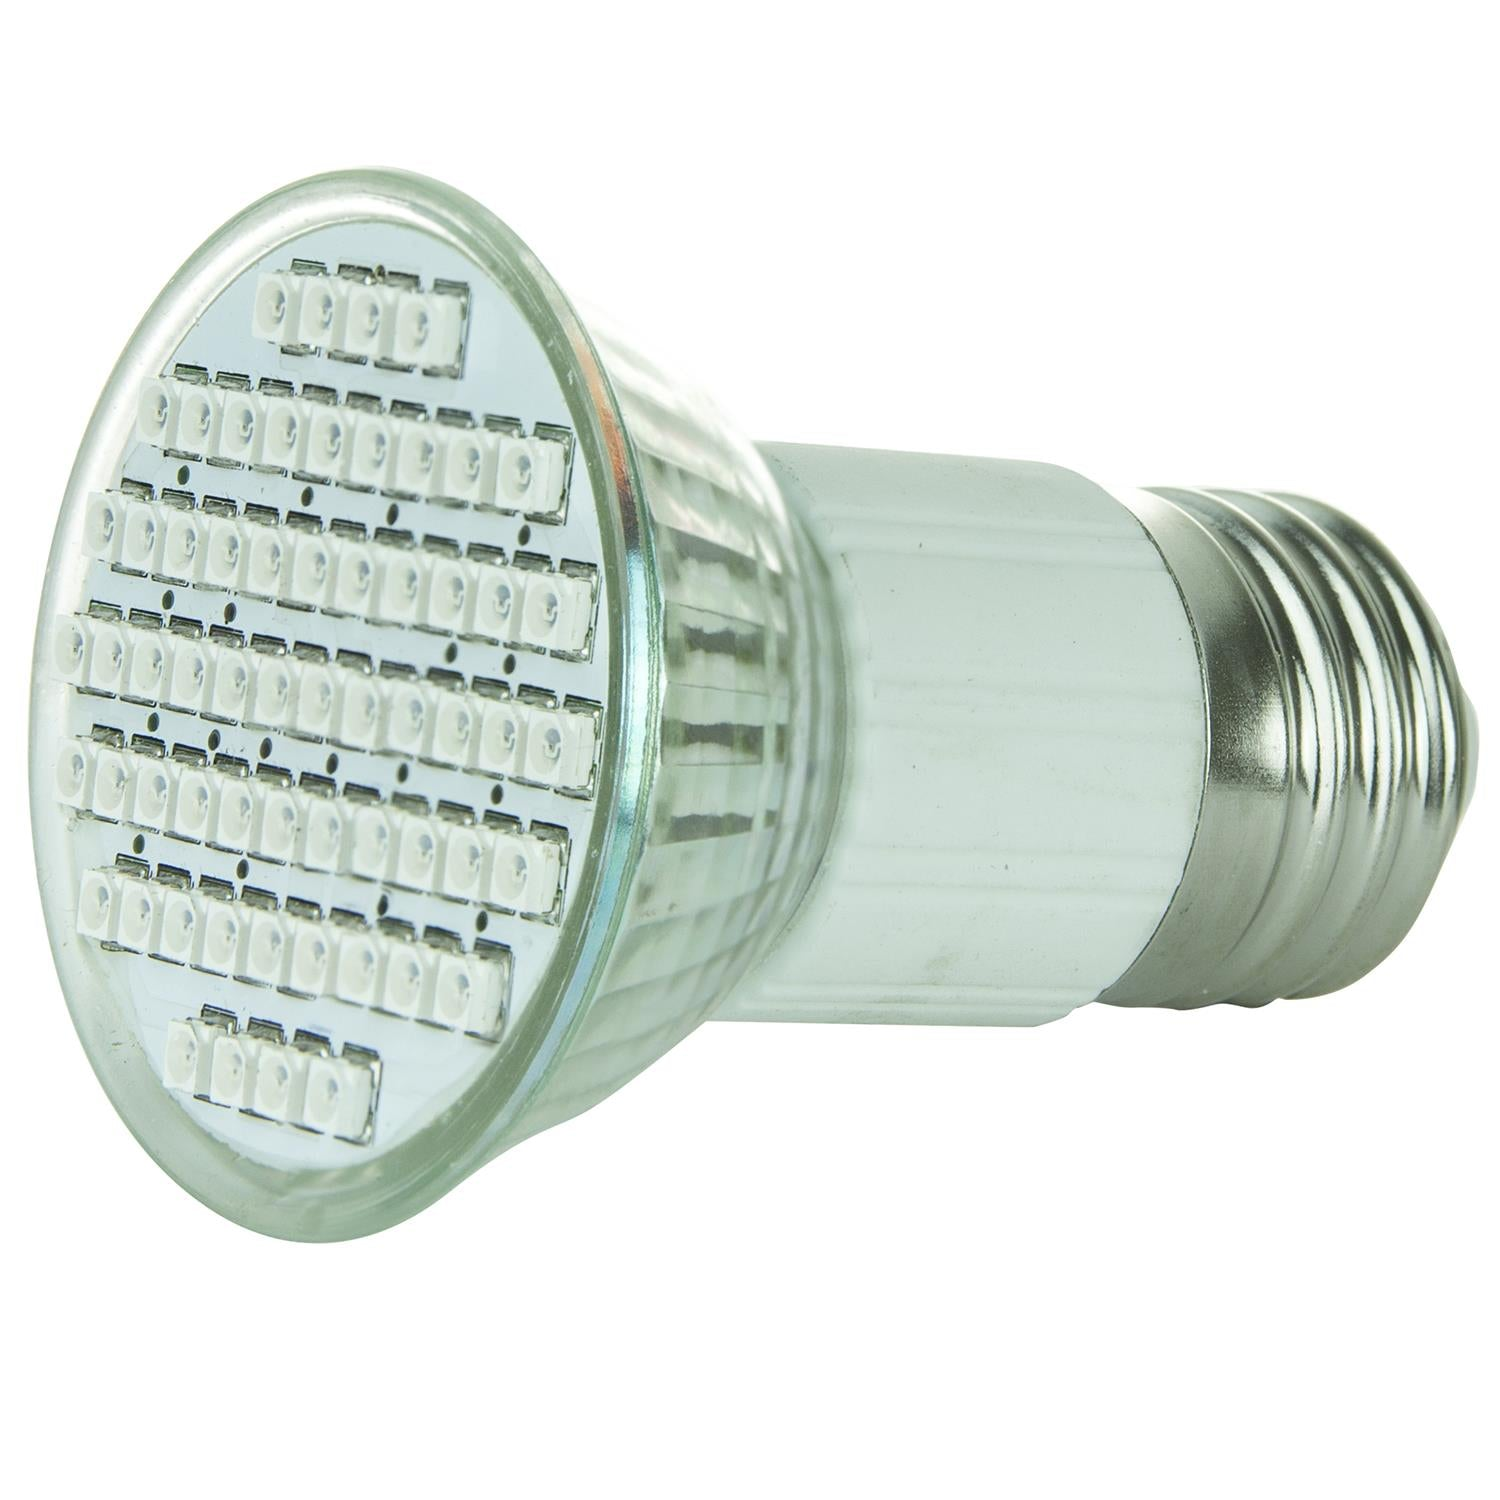 Sunlite 80236 Su Led Mr16 Mini Reflector Medium Base Bulb: Sunlite 80196-SU LED JDR MR16 Mini Reflector 2.8w Light